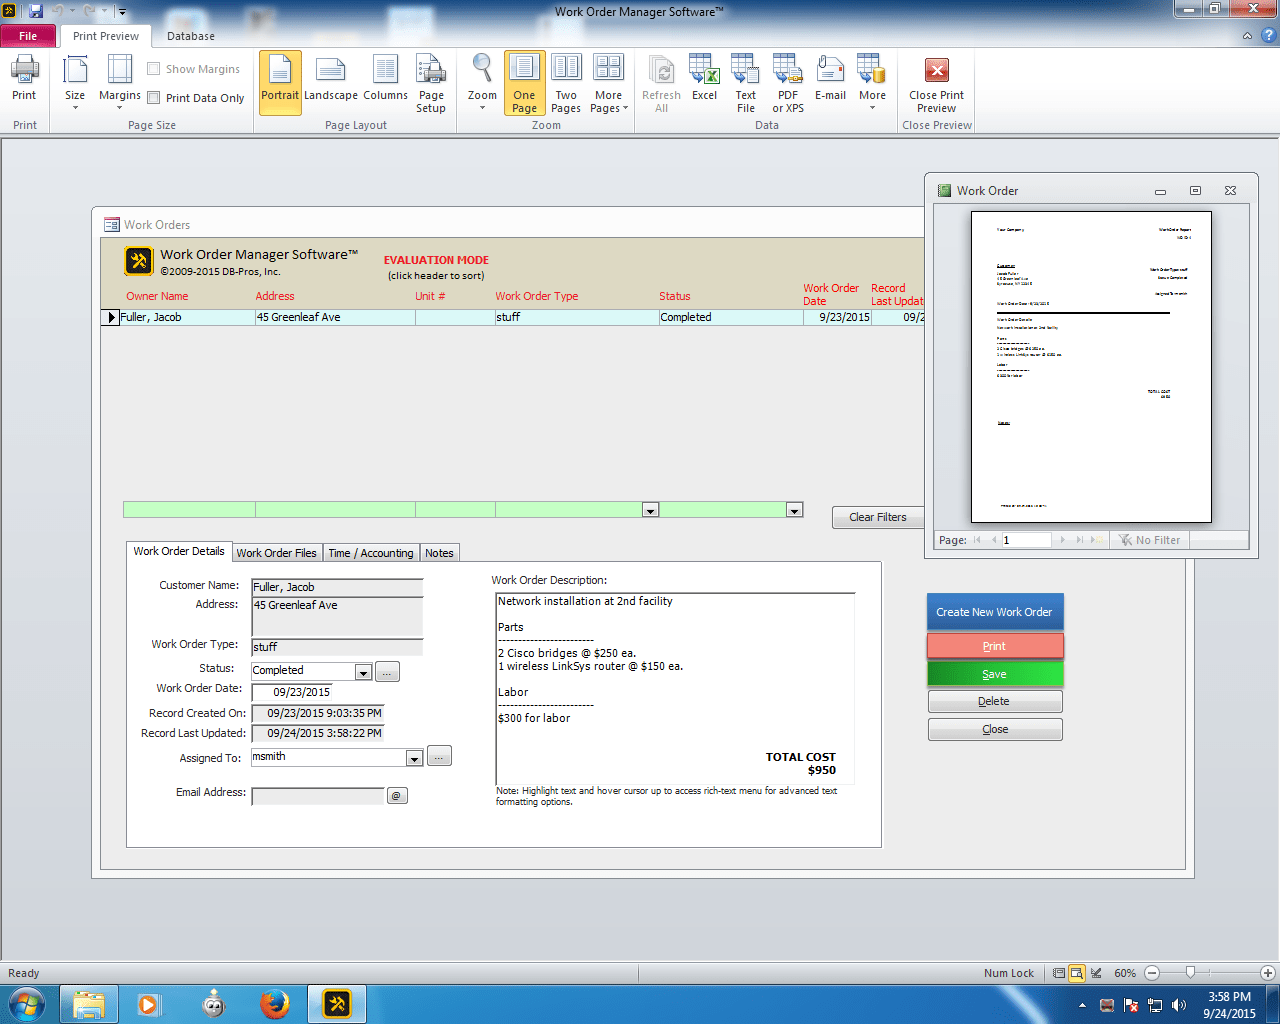 Work Order Manager Software 2.2.2